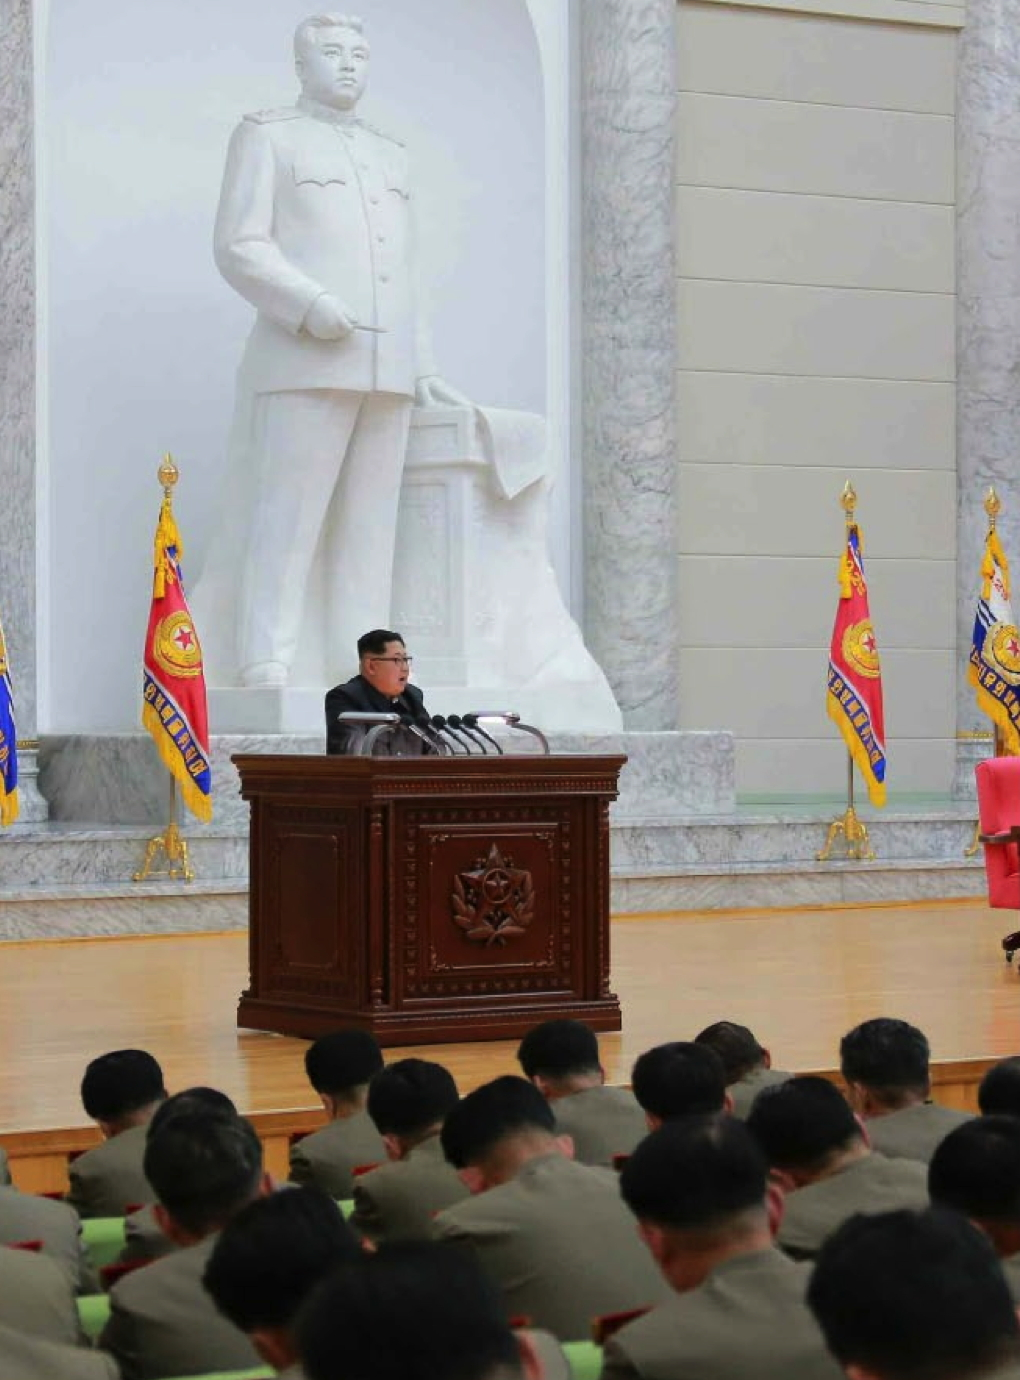 Kim Jong Un addresses senior KPA command personnel at conference room at the Ministry of People's Armed Forces (North Korea's defense ministry) (Photo: KCNA).